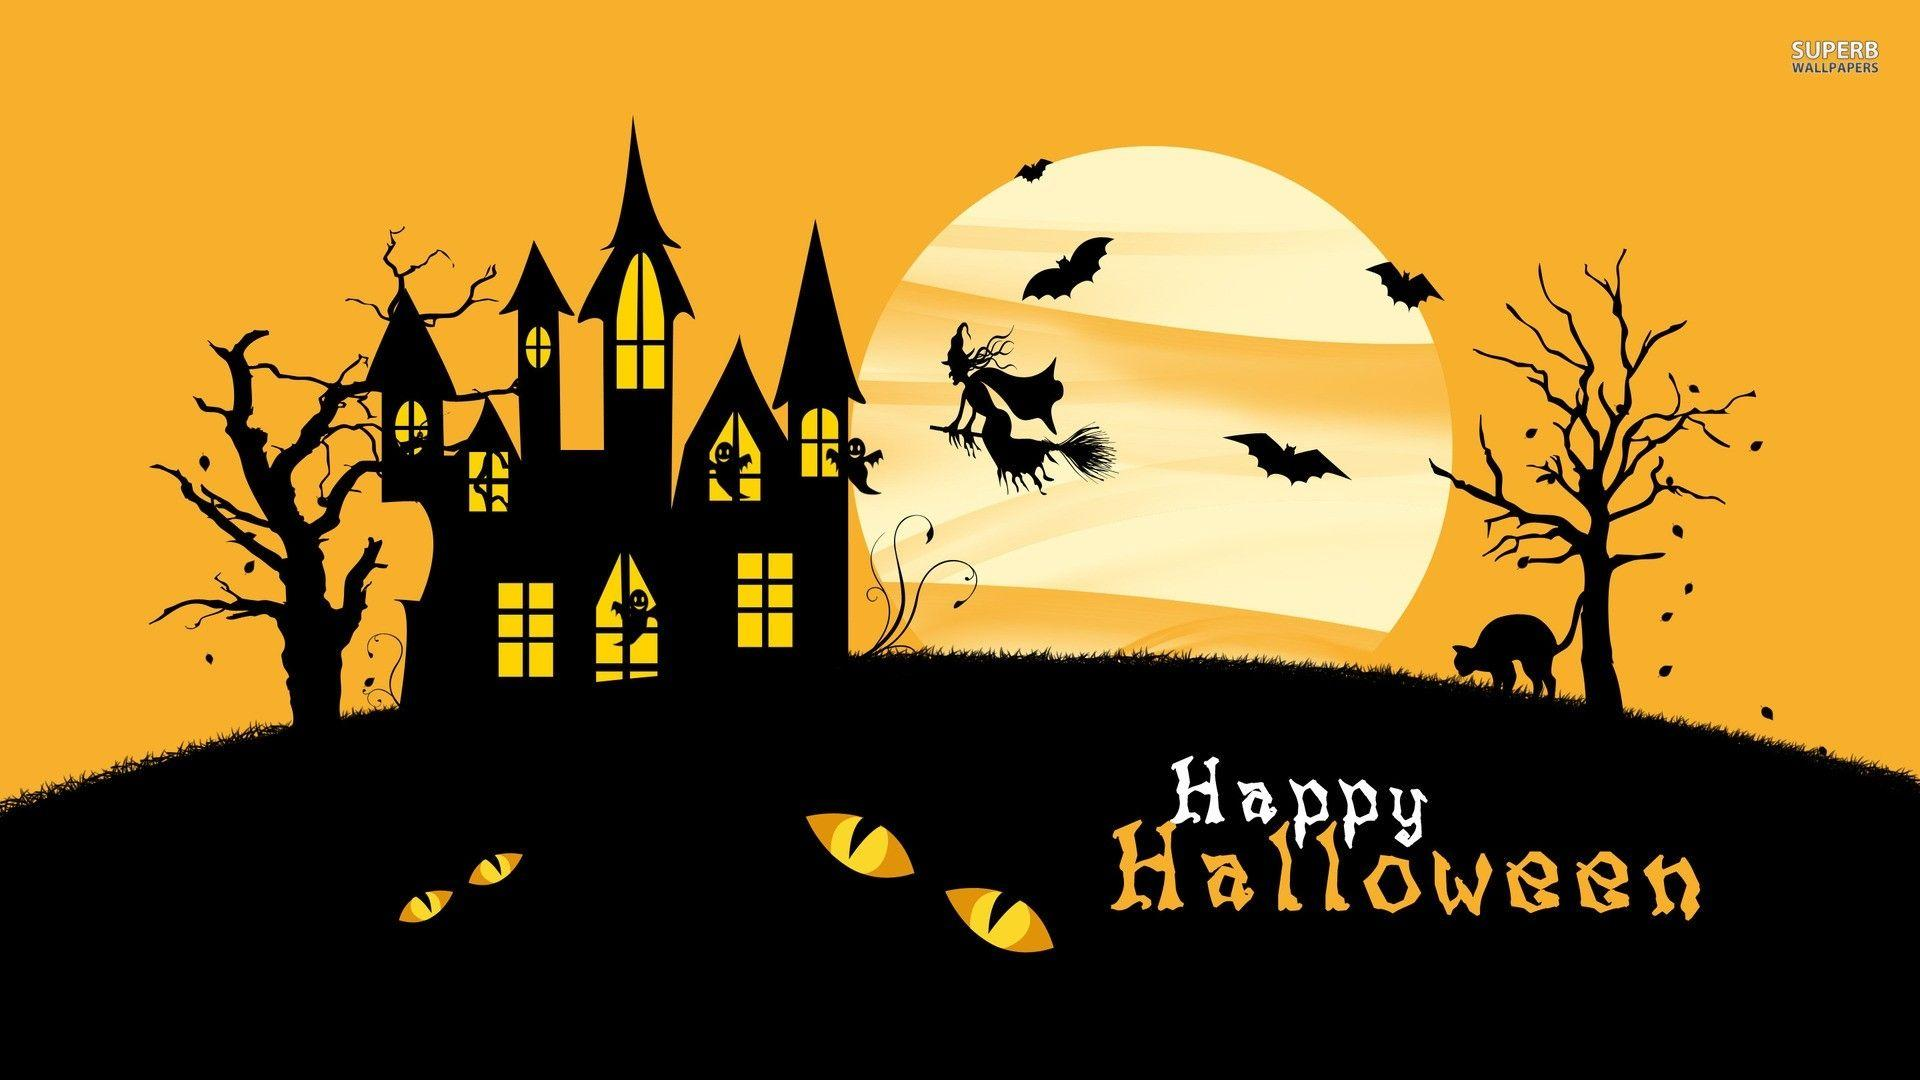 Happy Halloween 2018 Images, Quotes, Wishes, Pictures inside Happy ...